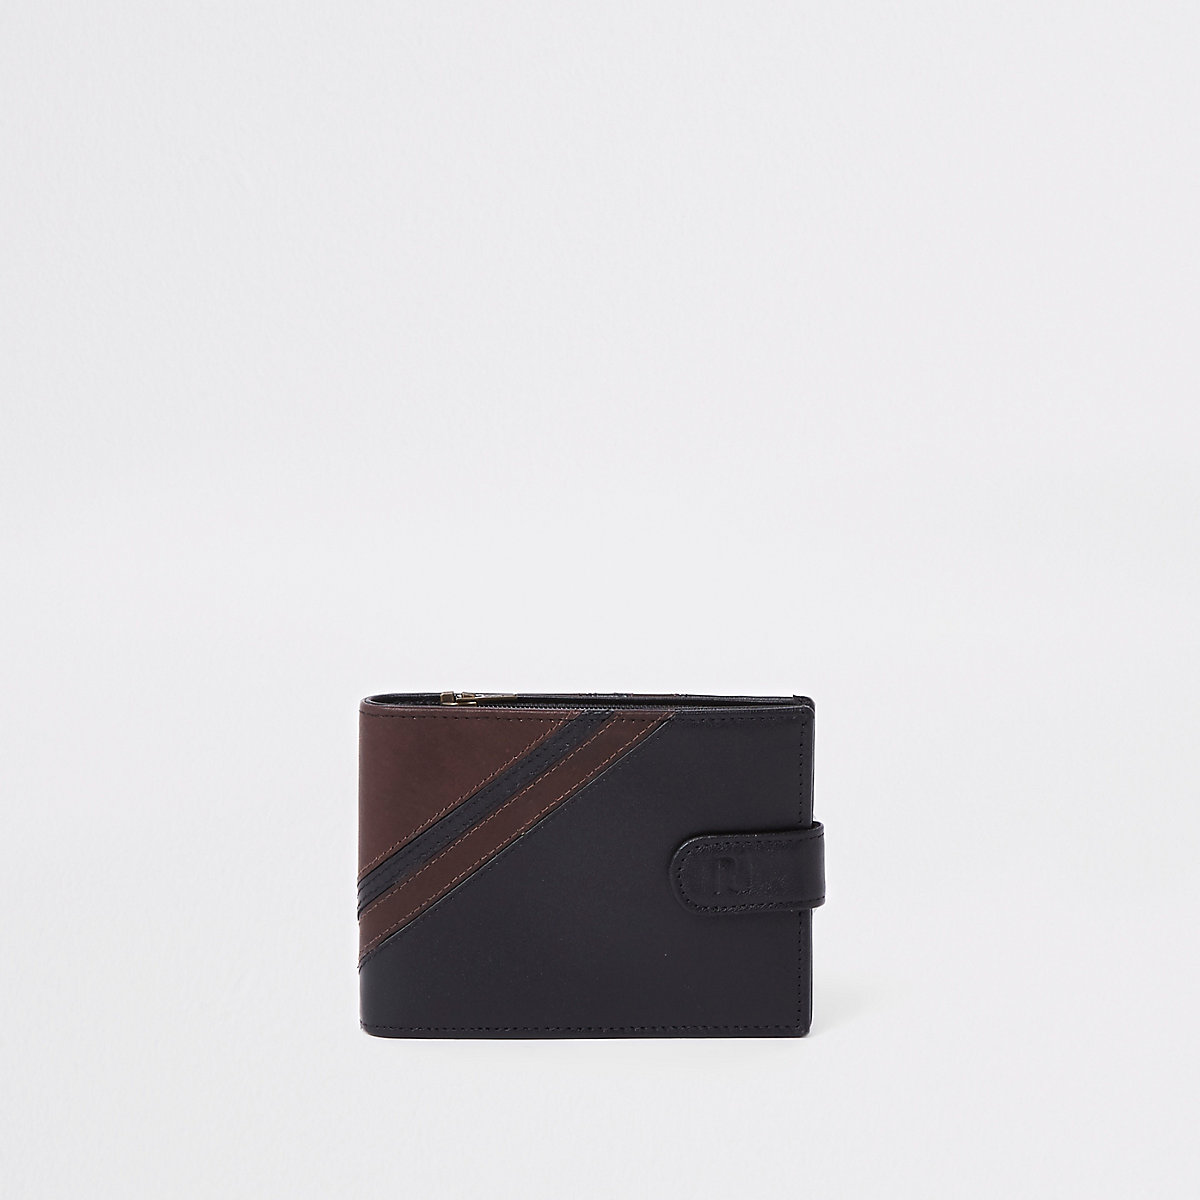 Black leather stripe wallet